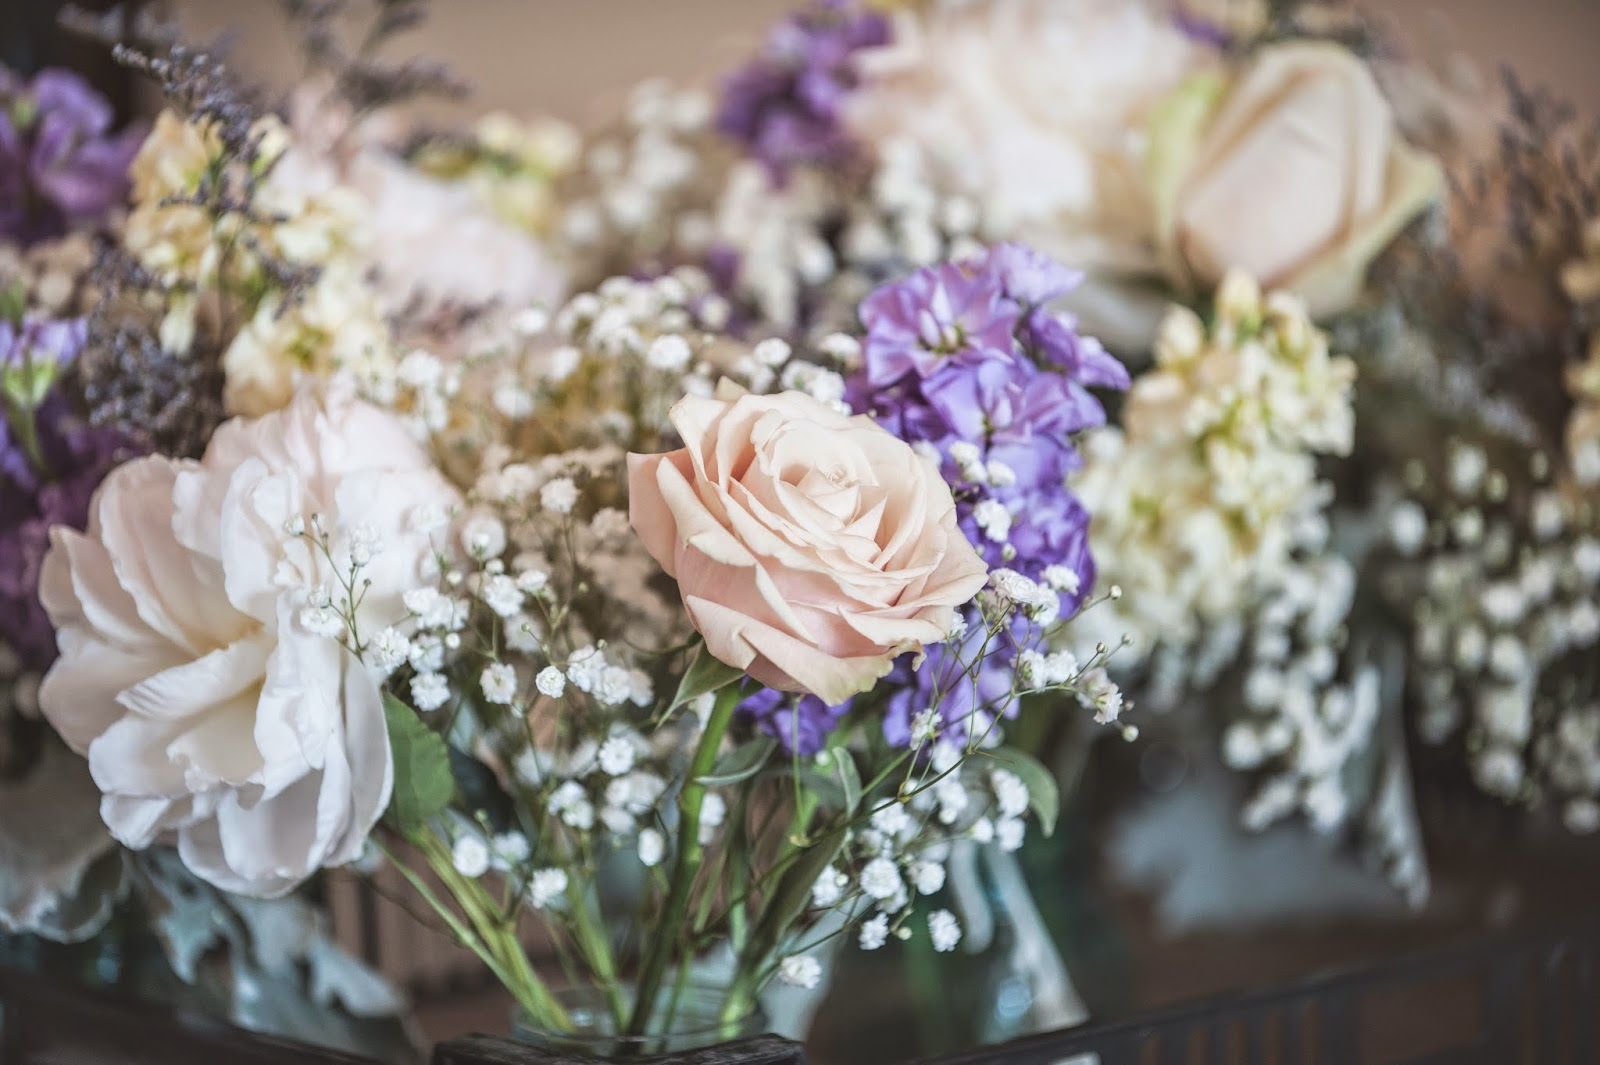 Wedding Flowers: Pendelton's Flower's